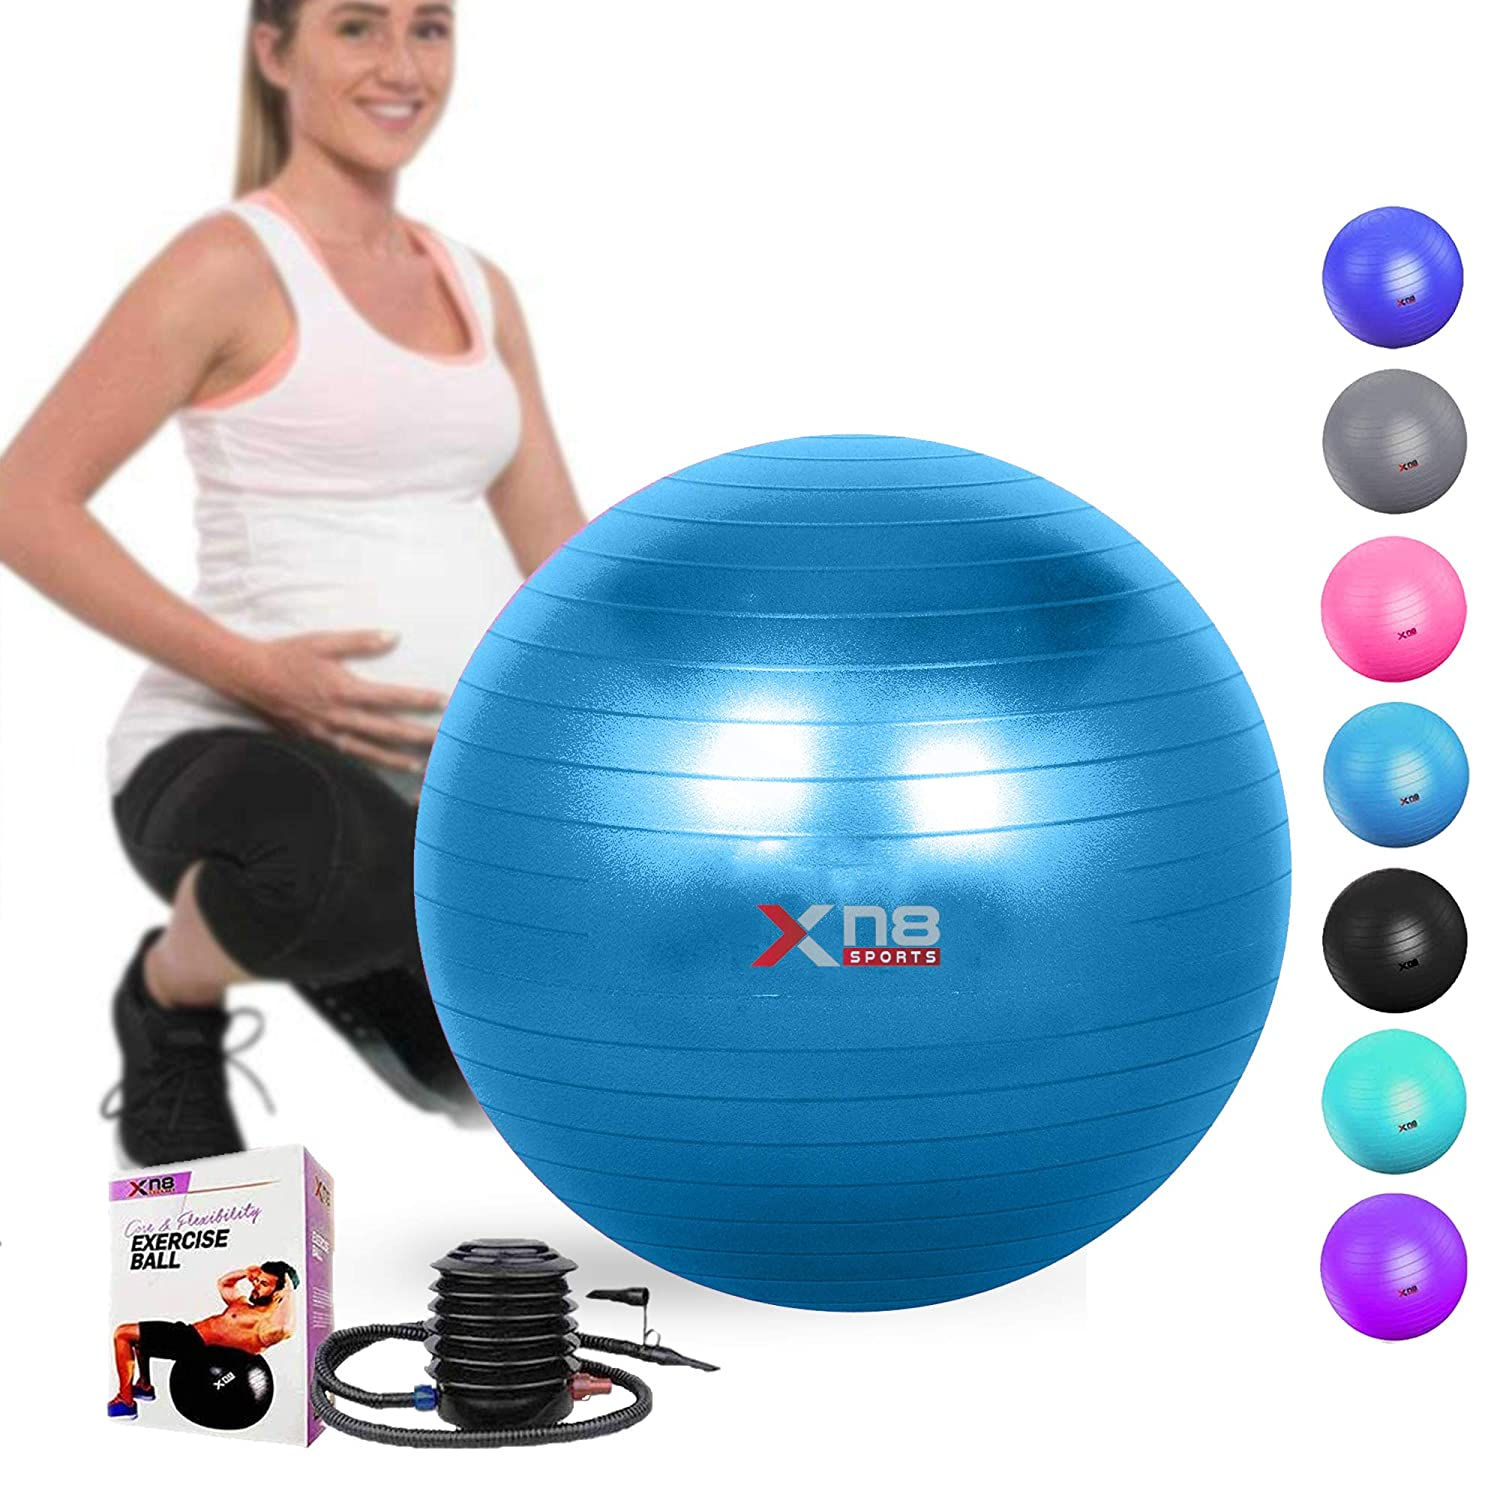 Xn8 Sports - Pelota de yoga, 75 cm, antiexplosiones, ideal para ...